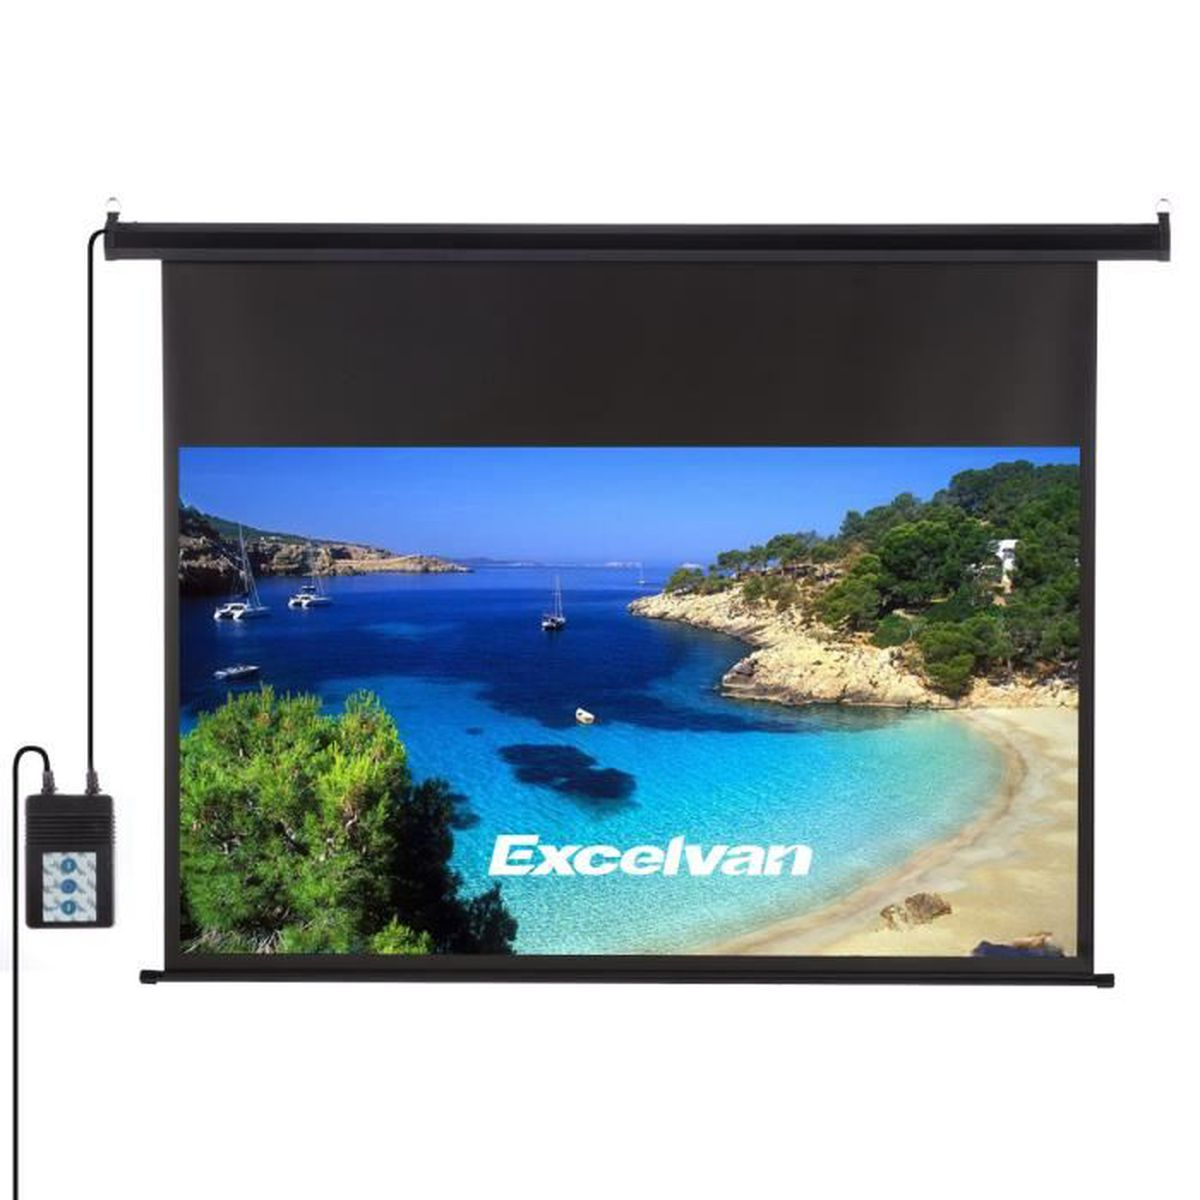 Gain Ecran De Projection excelvan 120 pouces 16: 9 1.2 gain Écran de projection hd